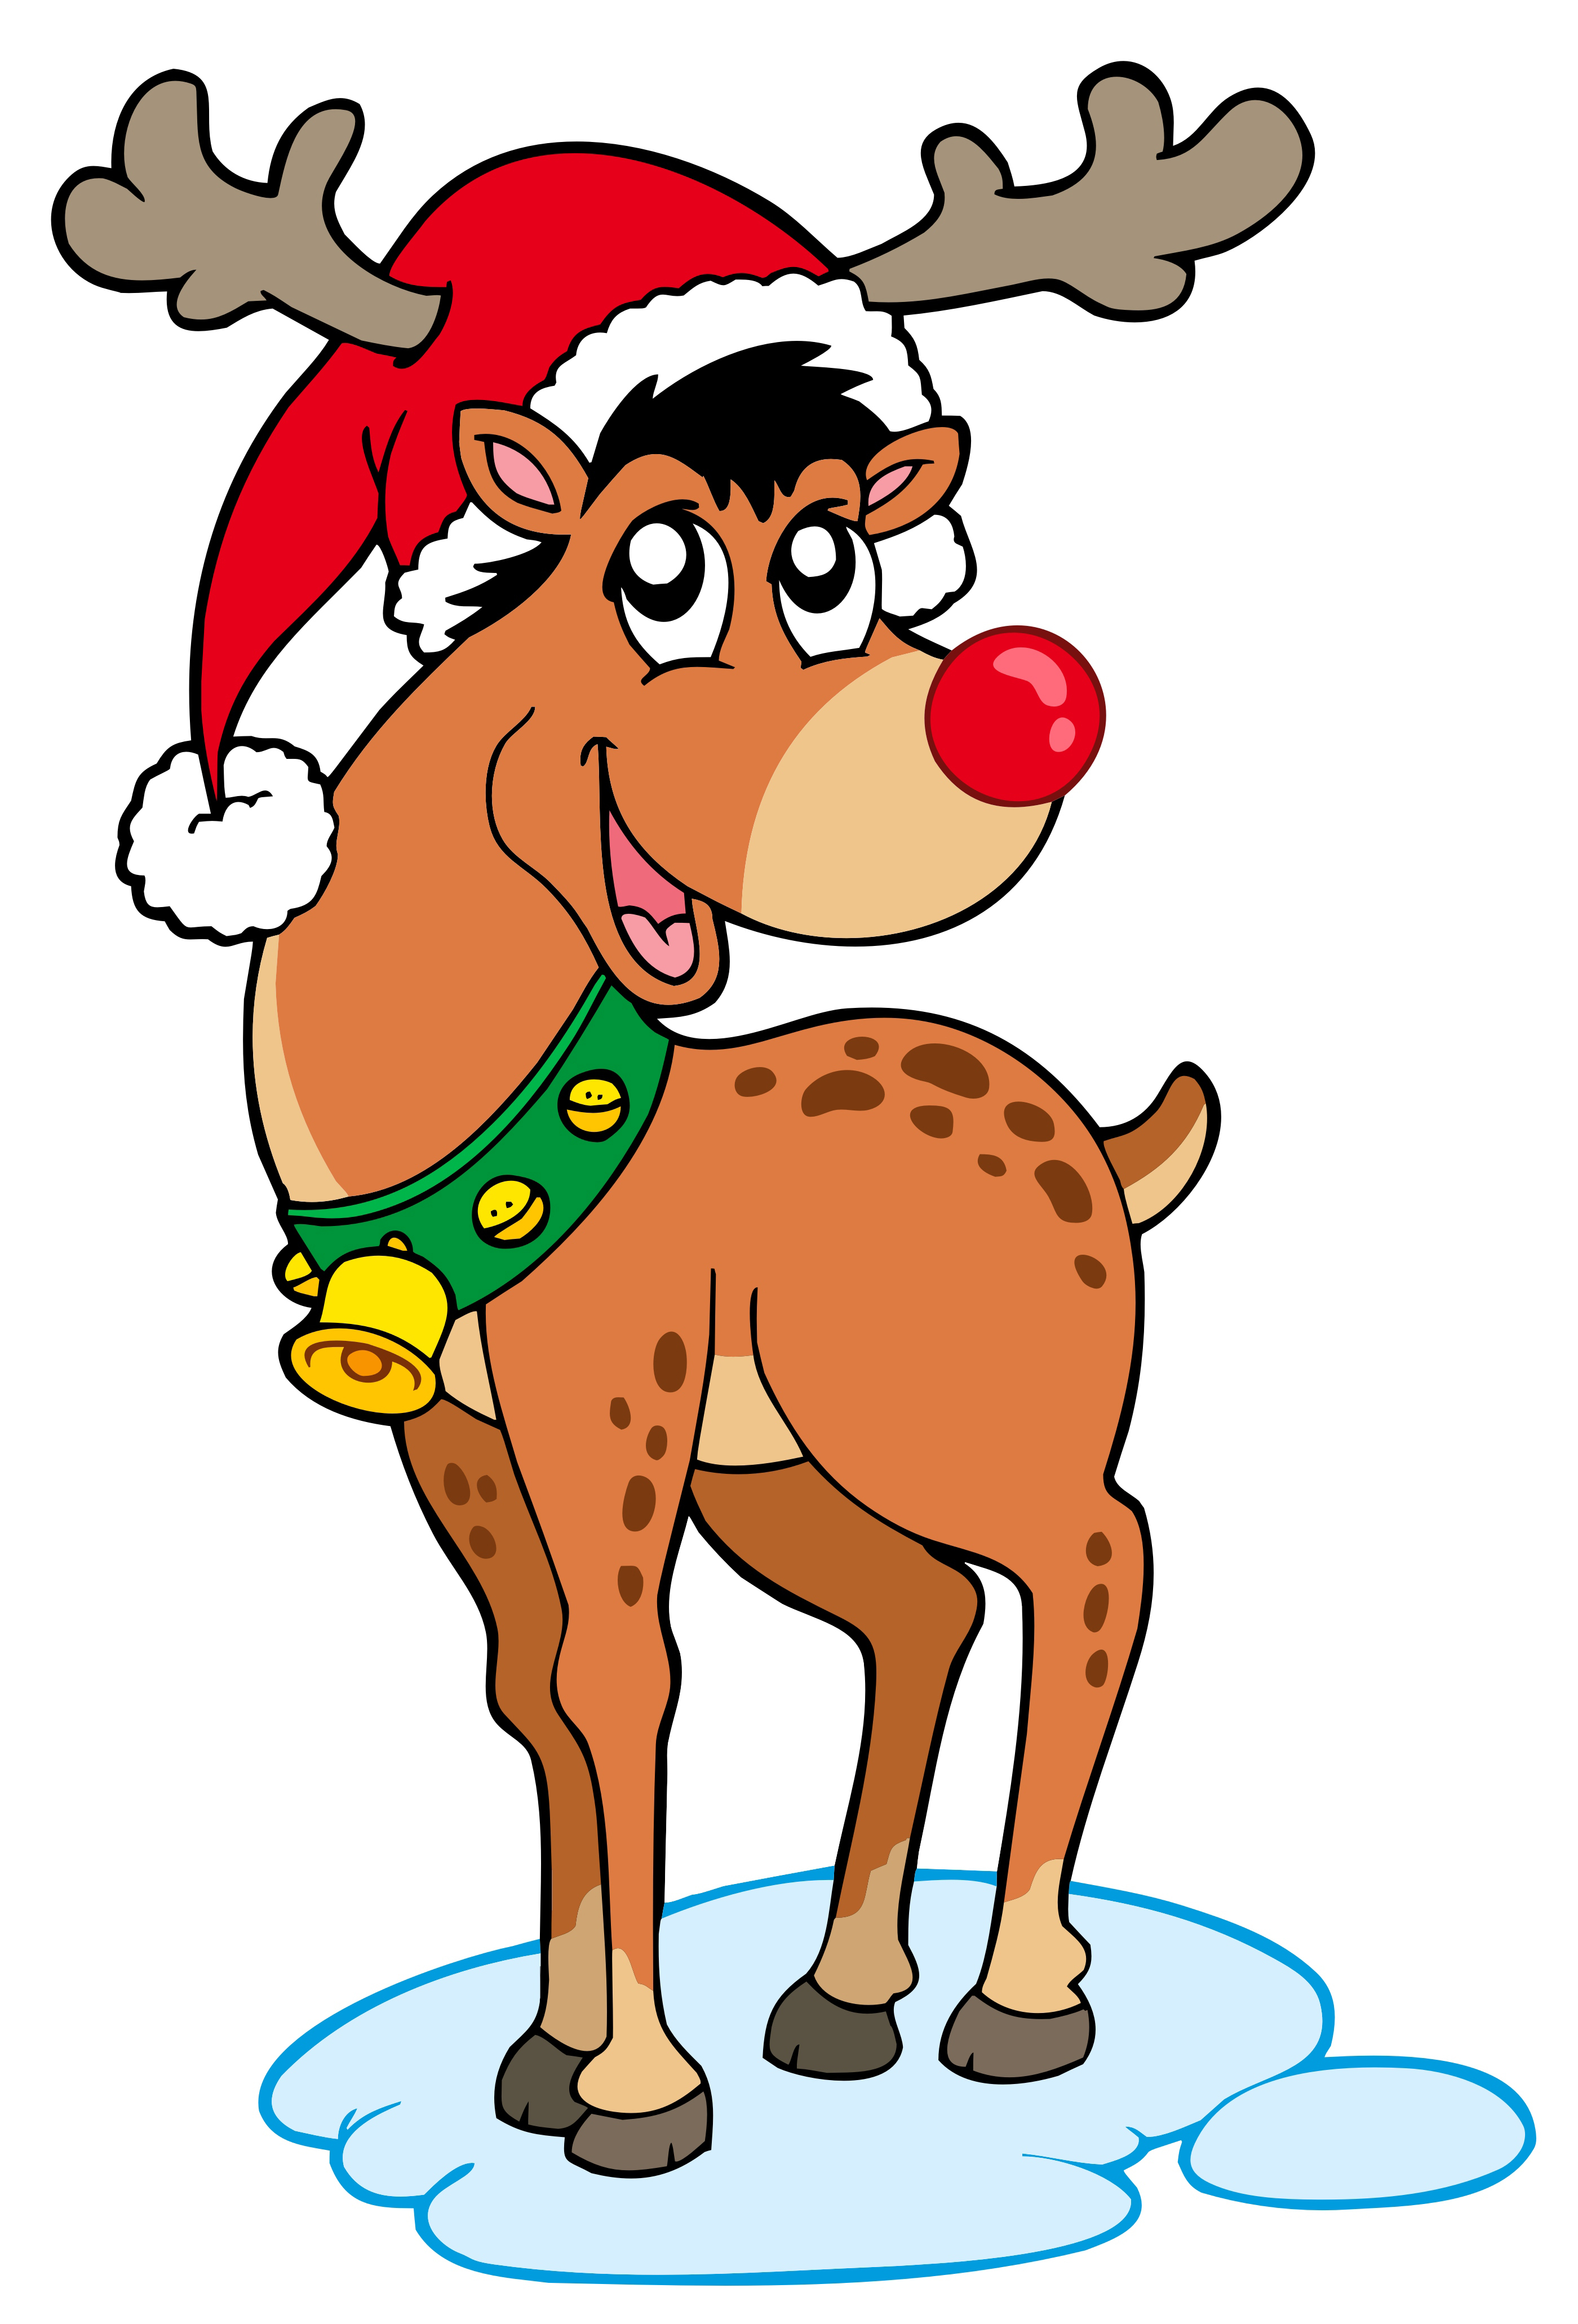 Santa And Rudolph Coloring Pages Santa And Rudolph Reindeer Giving Toys Christmas Coloring Page With